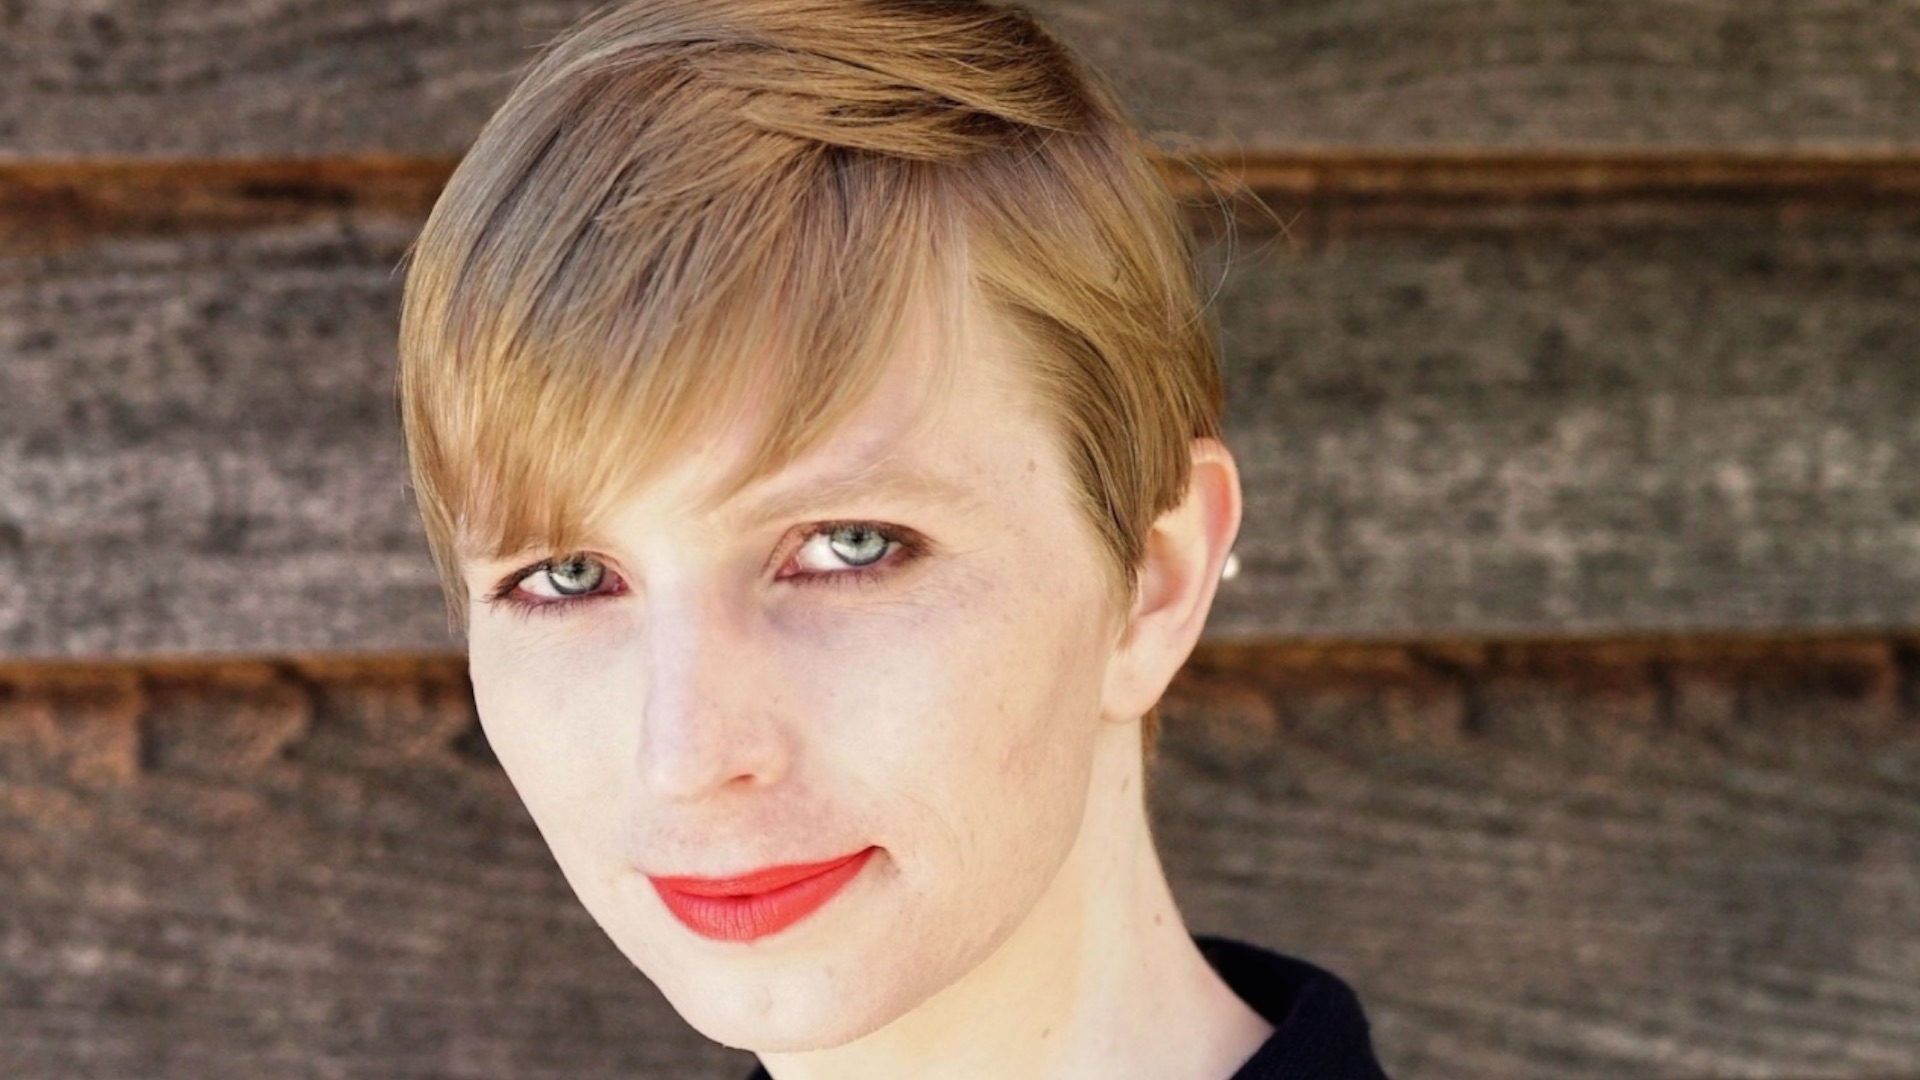 Obama commutes sentence of Chelsea Manning, soldier convicted for leaking classified information